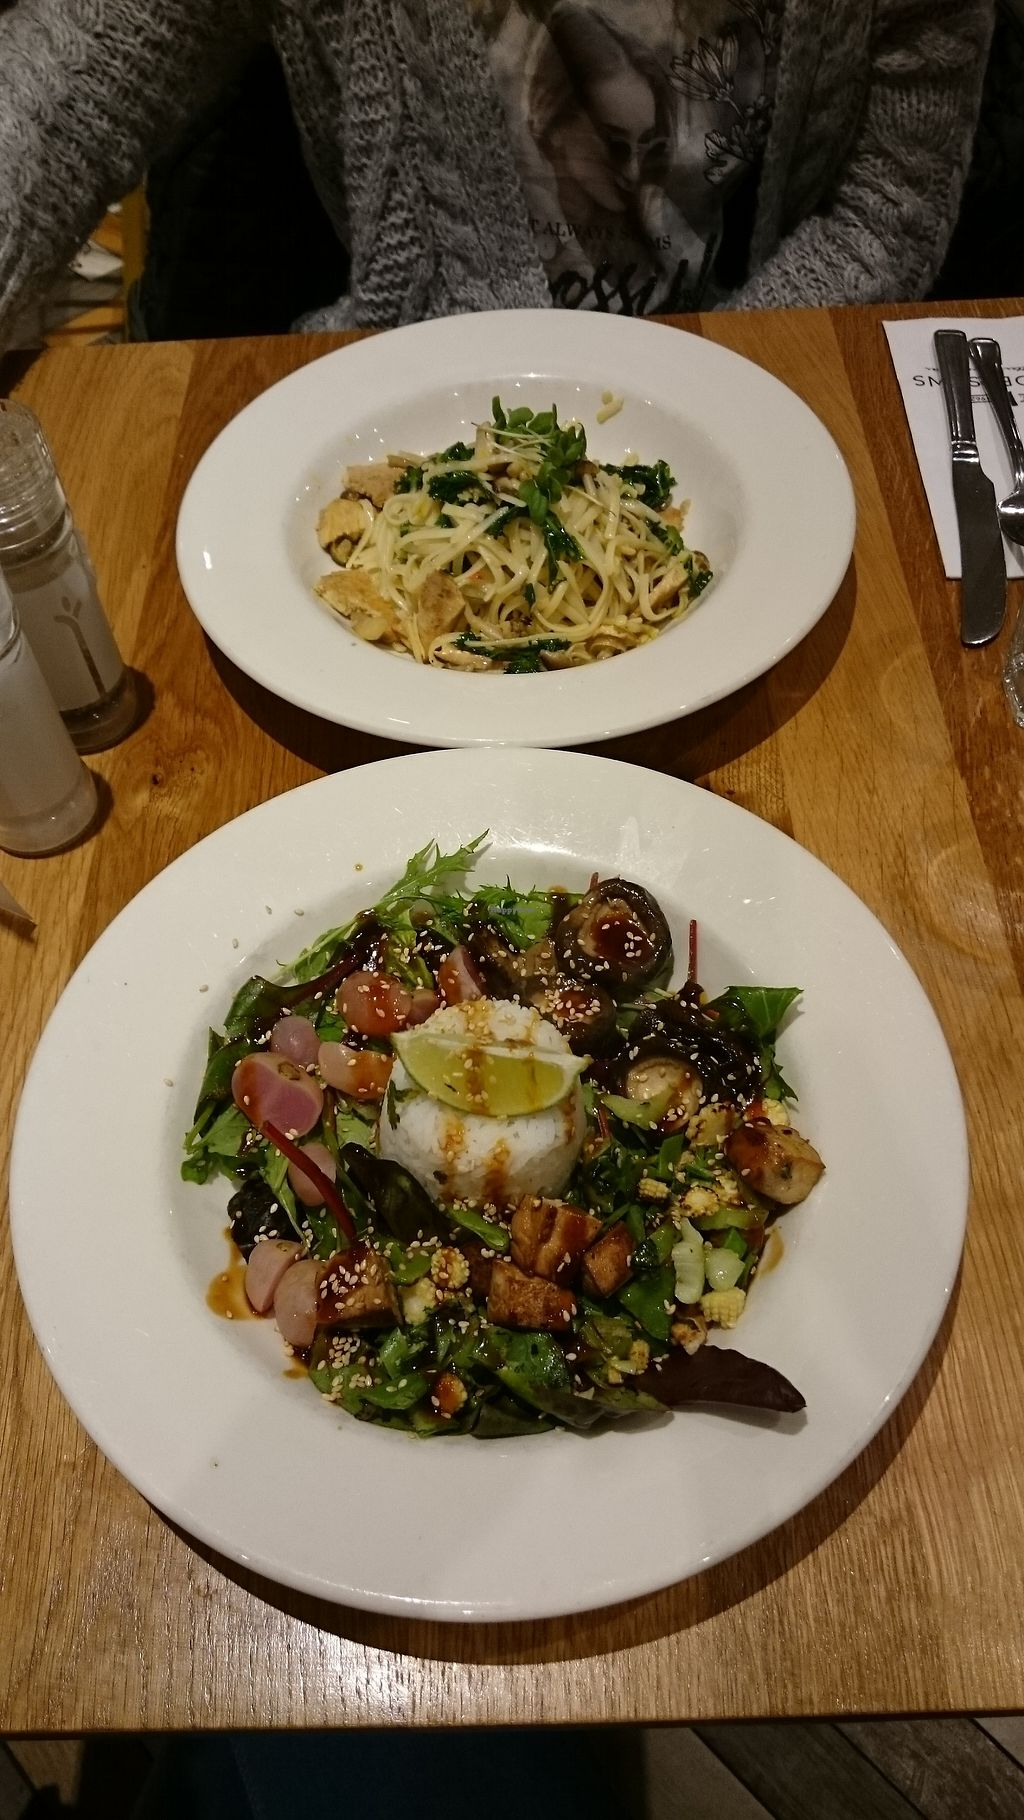 """Photo of Henderson's Vegan  by <a href=""""/members/profile/Layra"""">Layra</a> <br/>Mushroom linguine and teriyaki bowl <br/> October 24, 2017  - <a href='/contact/abuse/image/59873/318259'>Report</a>"""